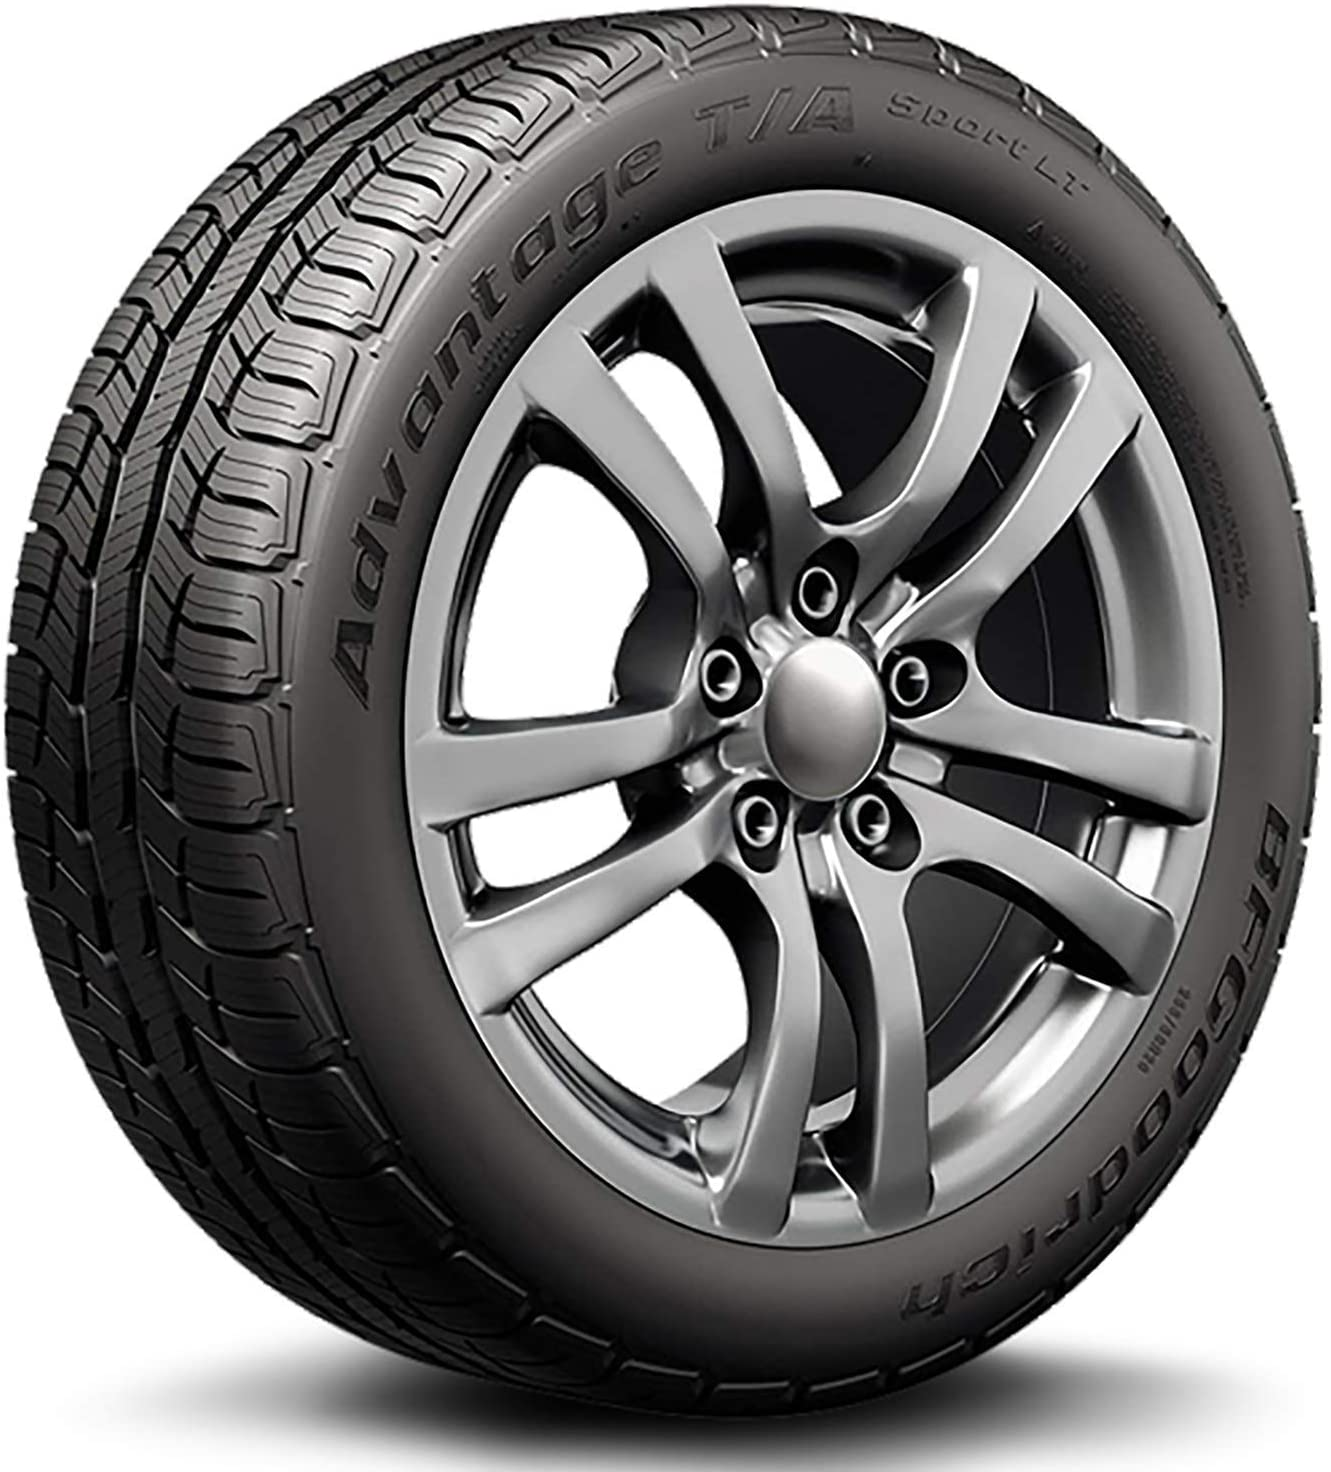 BFGoodrich Advantage T/A Sport All-Season Radial Tire-195/55R15 85V